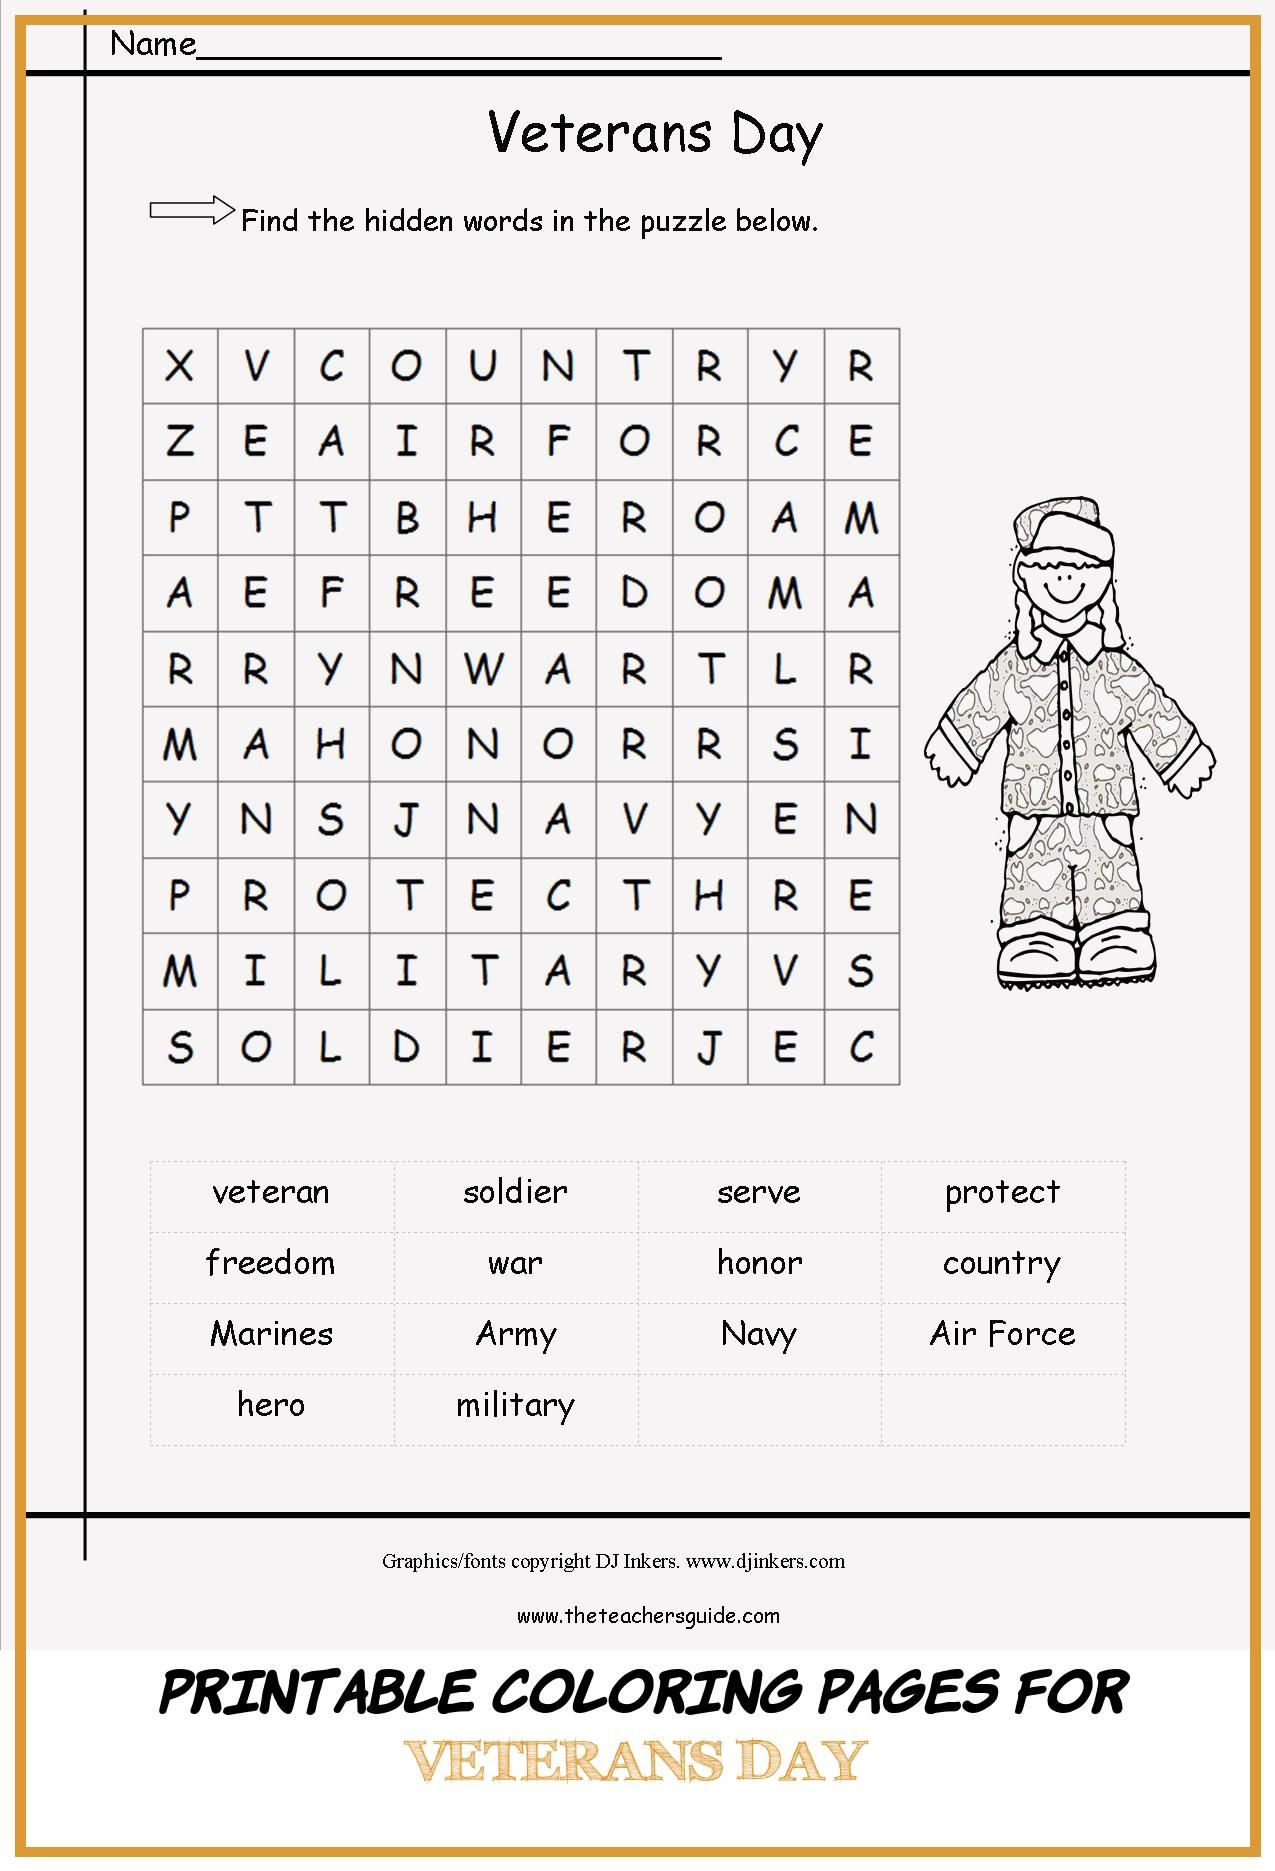 16 Printable Coloring Pages For Veterans Day In